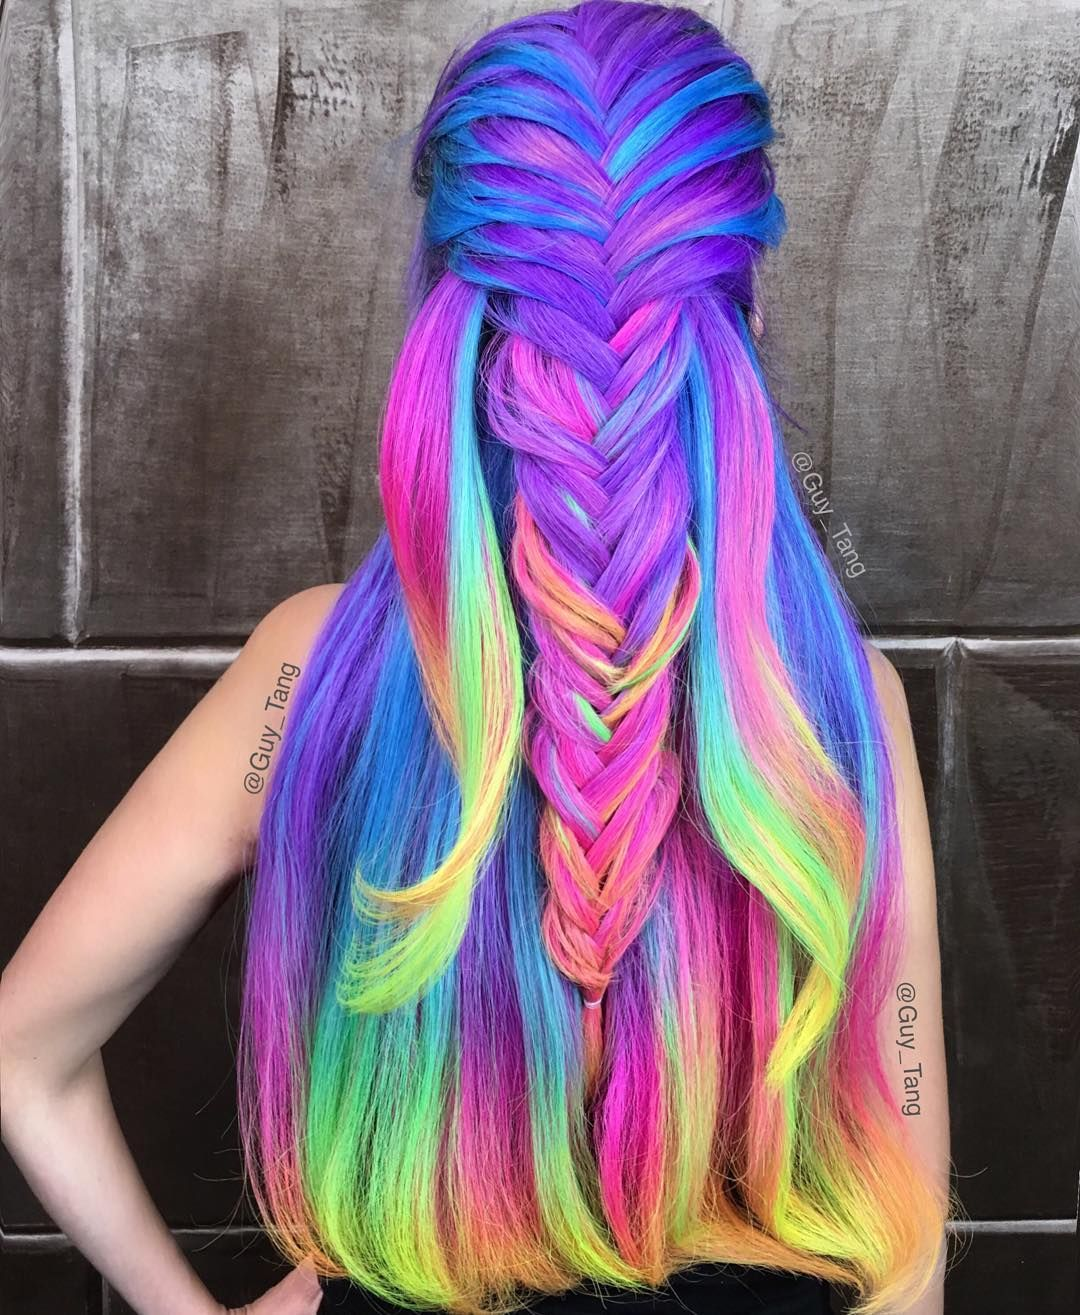 bright hair colors on pinterest bright hair rainbow hair and do you love bright colors i see your true colors